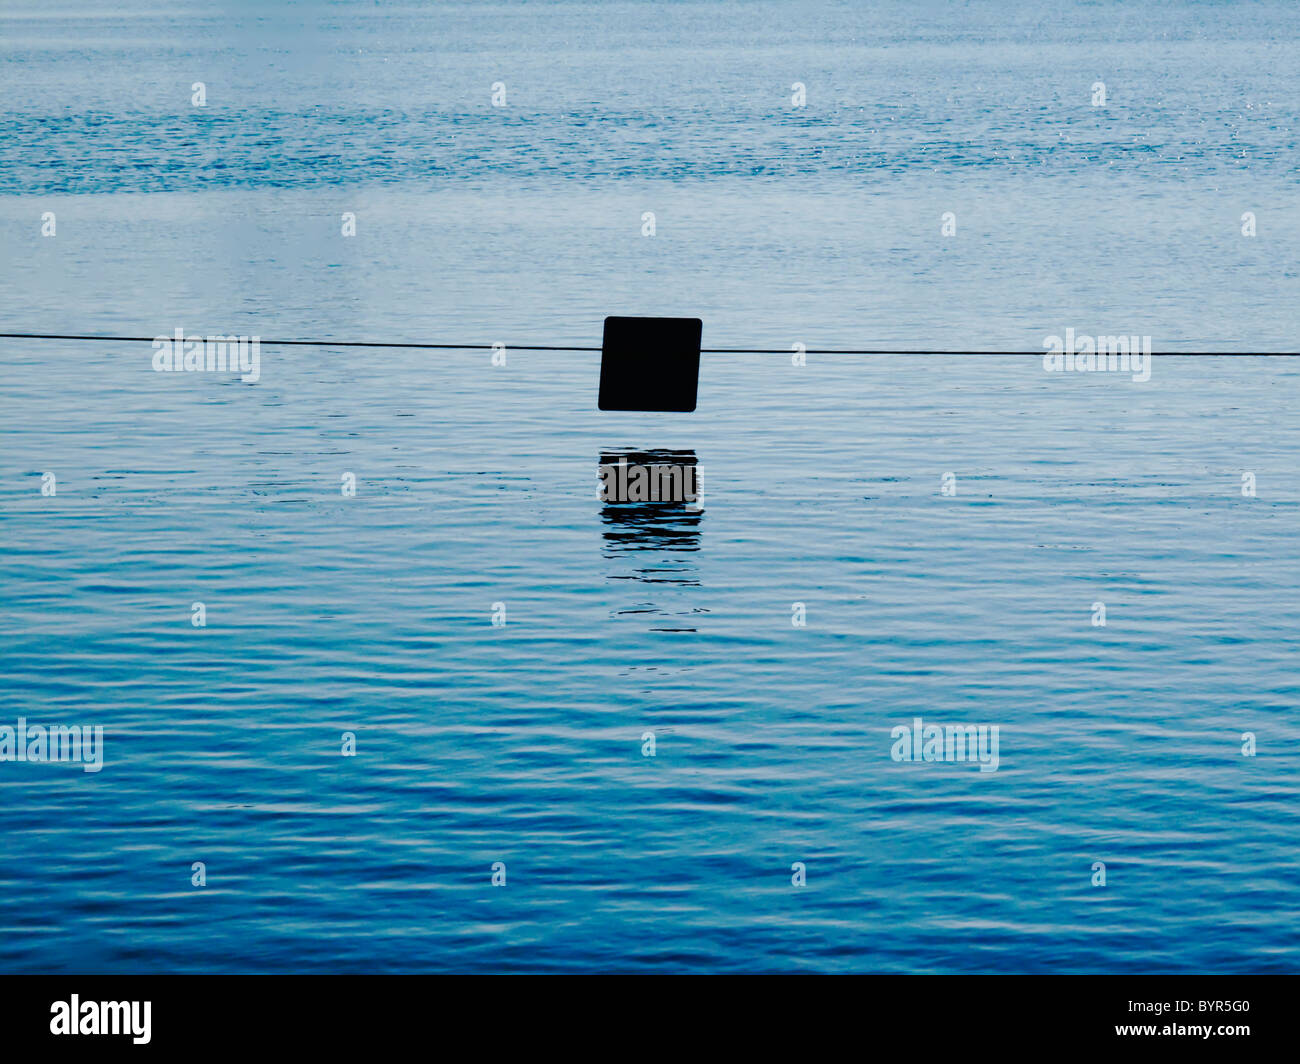 A still body of water with sign - Stock Image